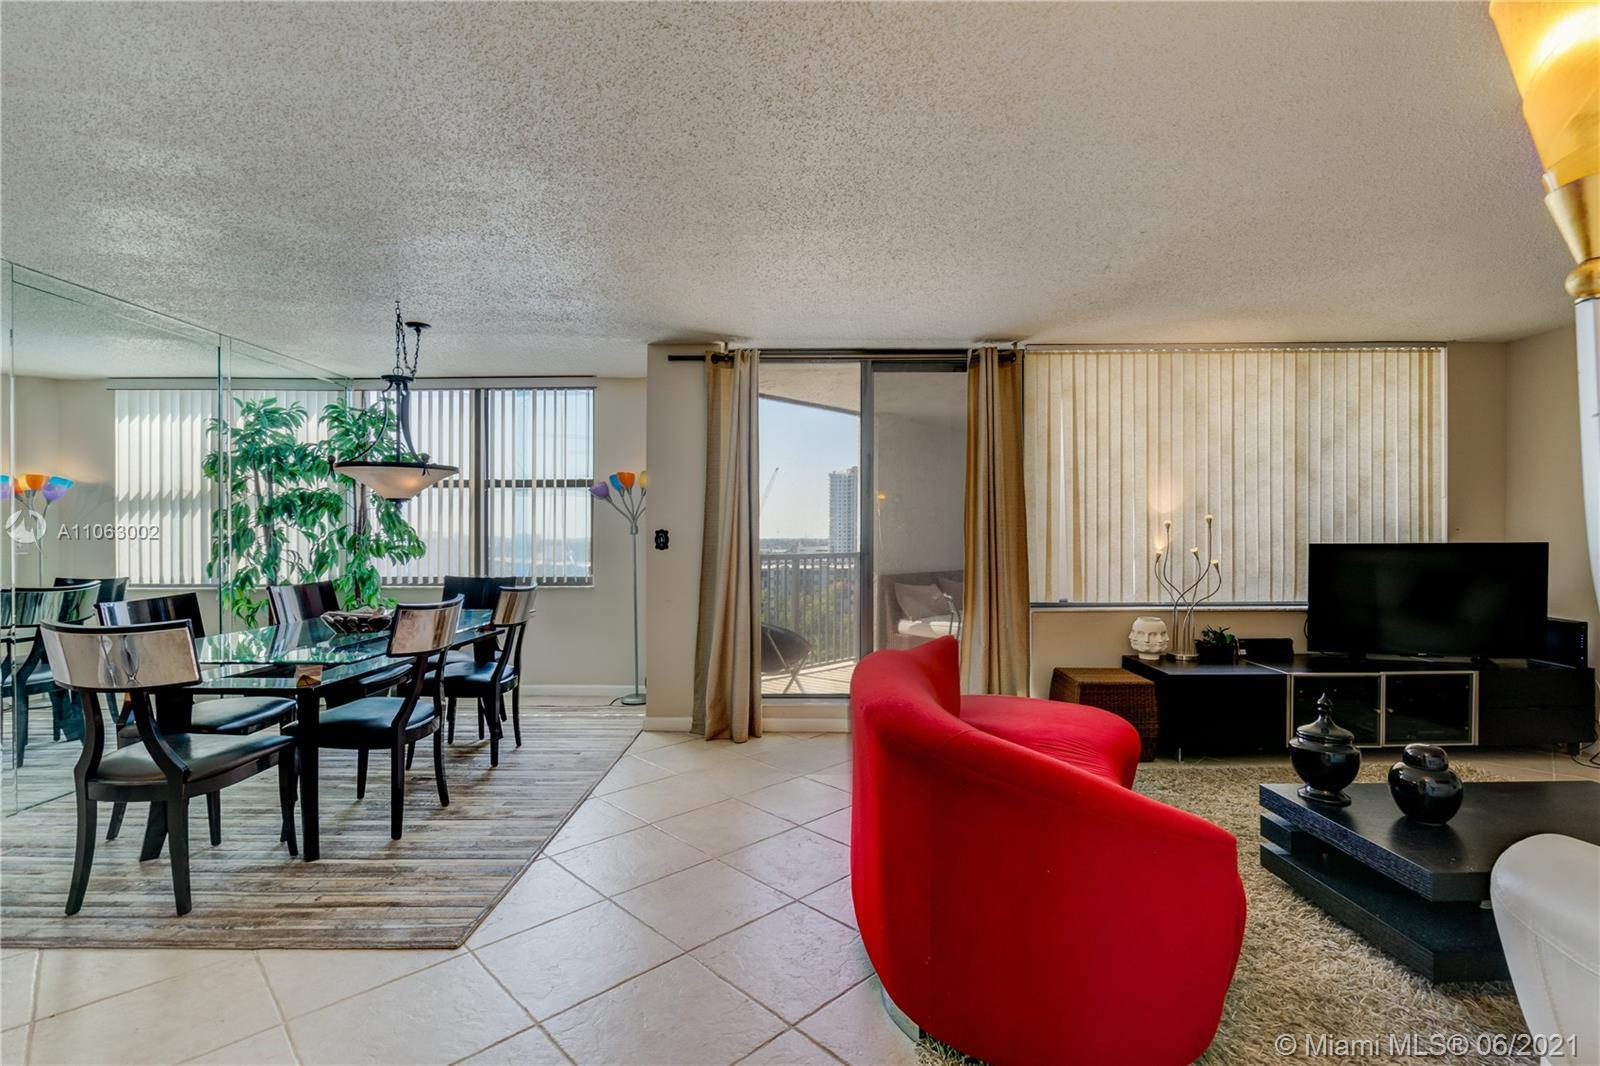 This 11th-floor unit has beautiful west views of the Sunset. This Lovely and Spacious One Bedroom an